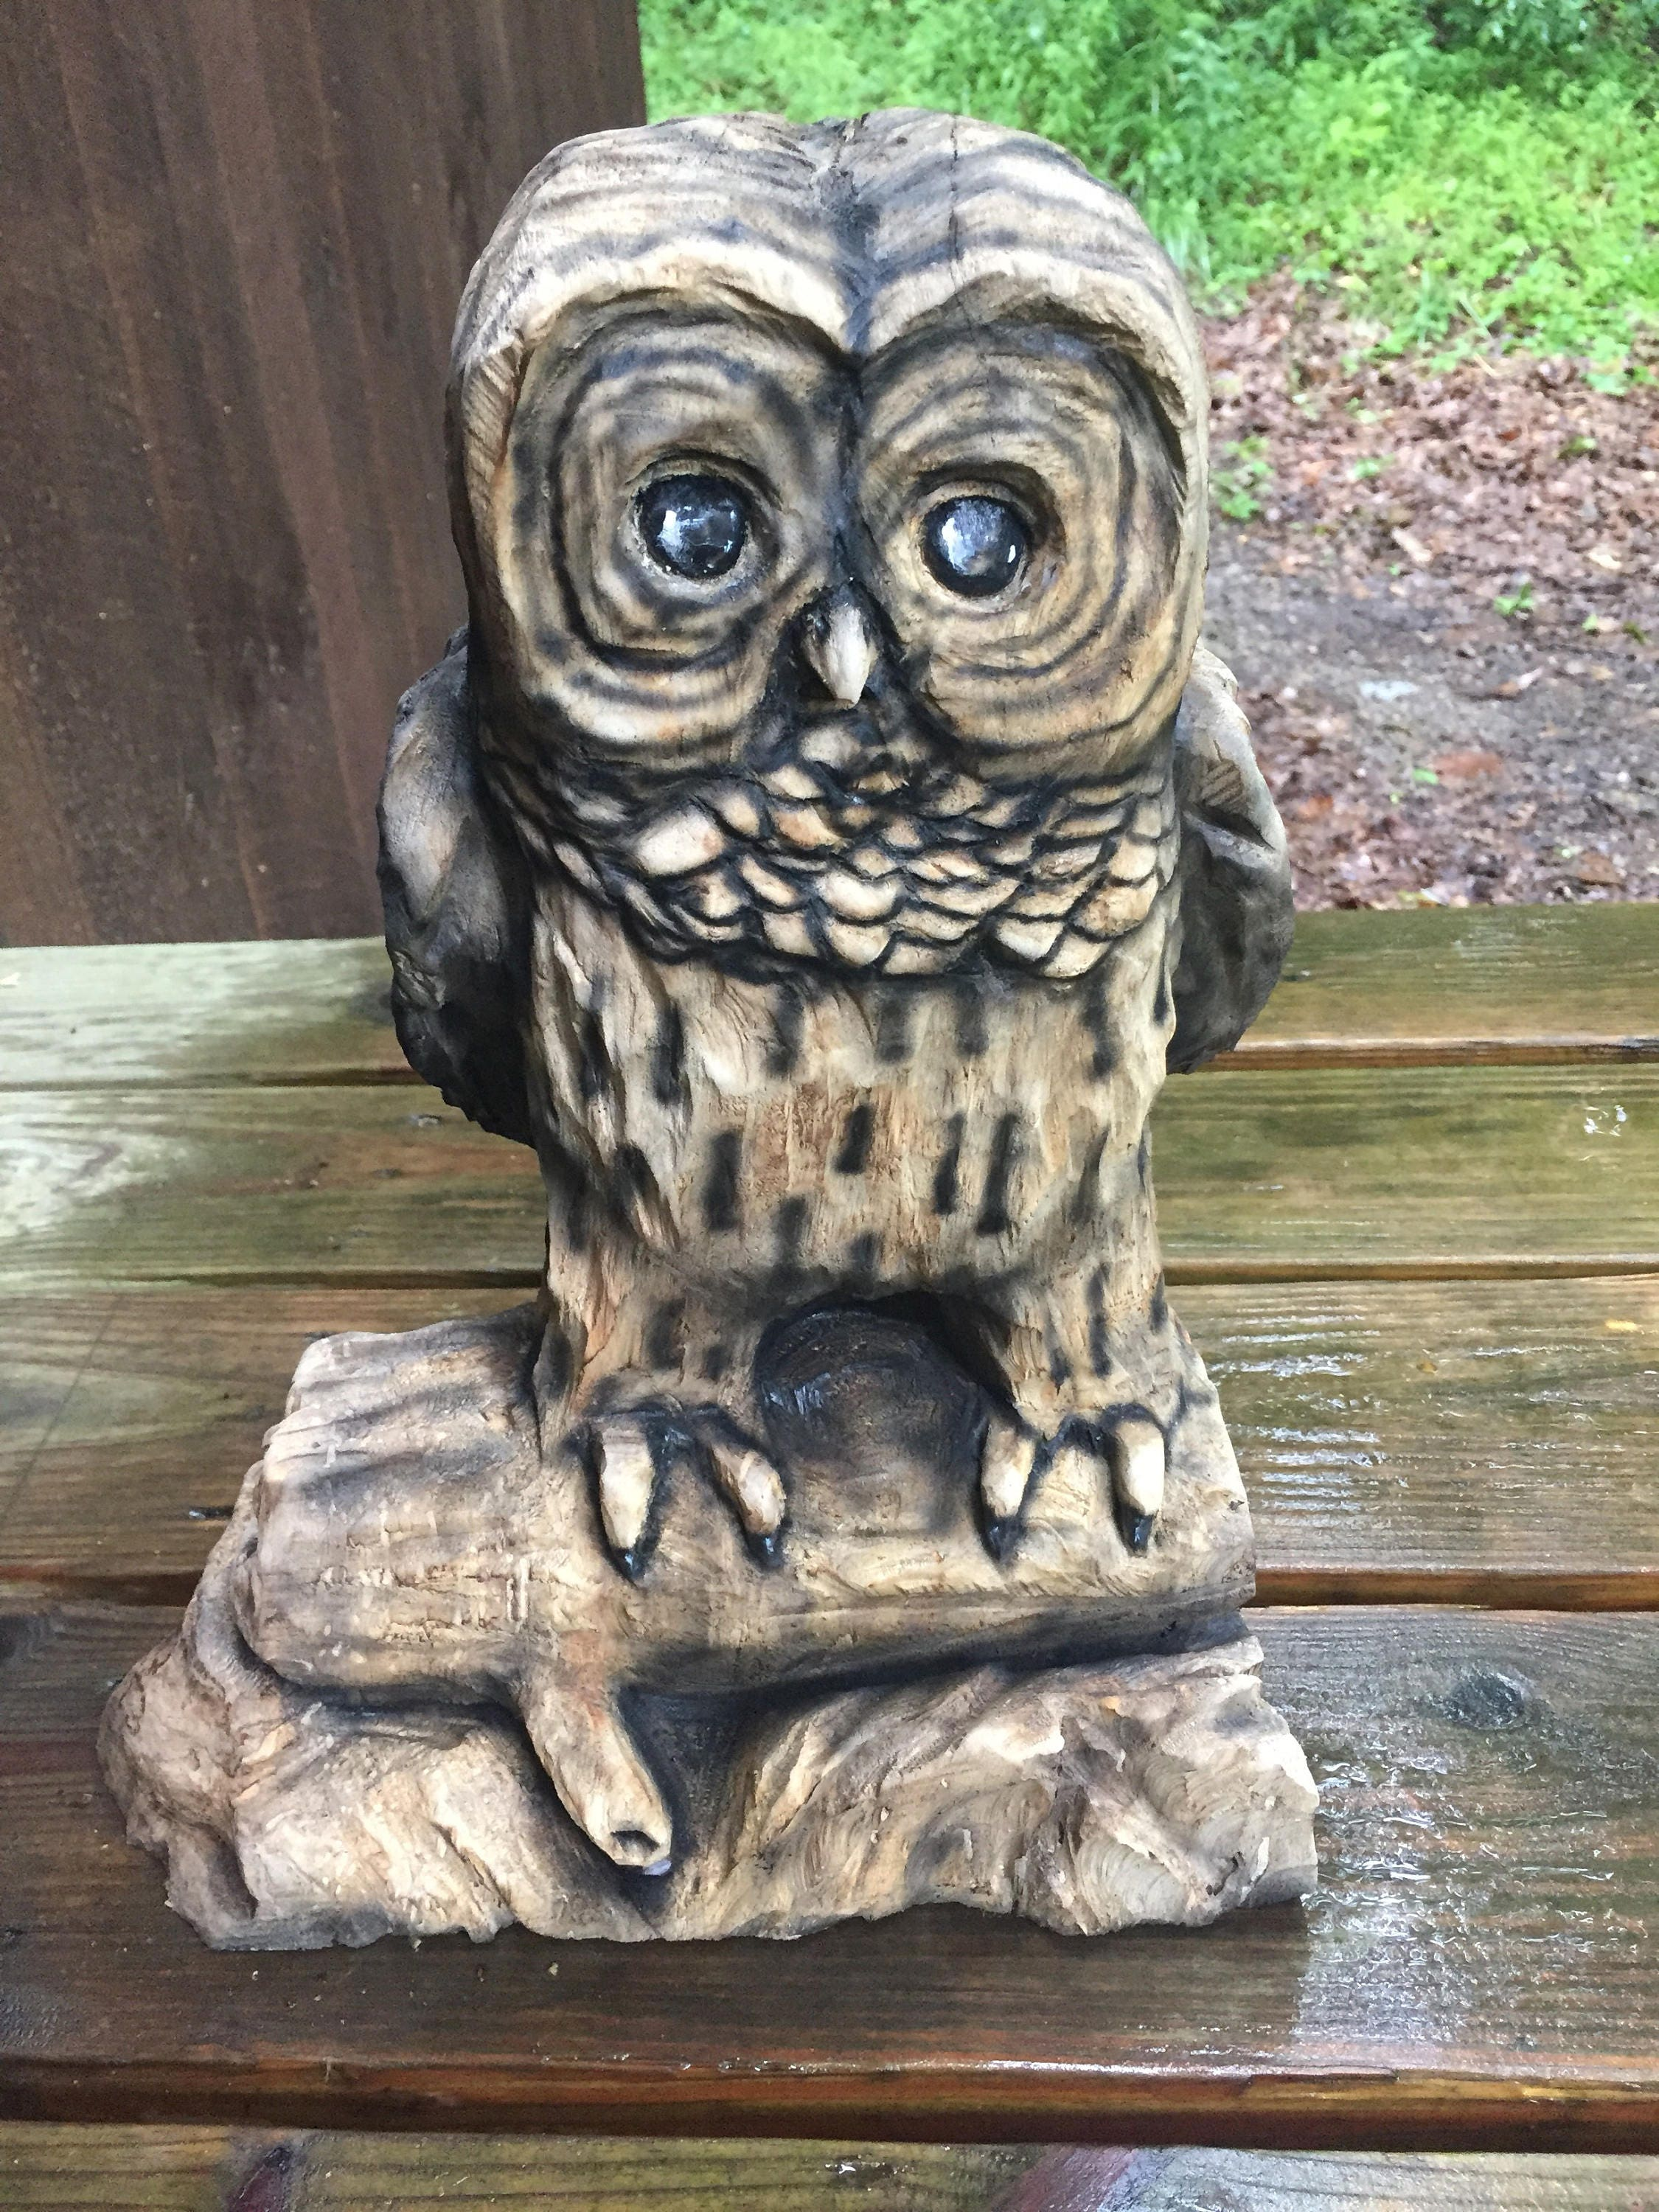 Owl Chainsaw Carving Wood Cute Sculpture Gift For Her Handmade Woodworking Log Home Decor Birthday OOAK By Carte